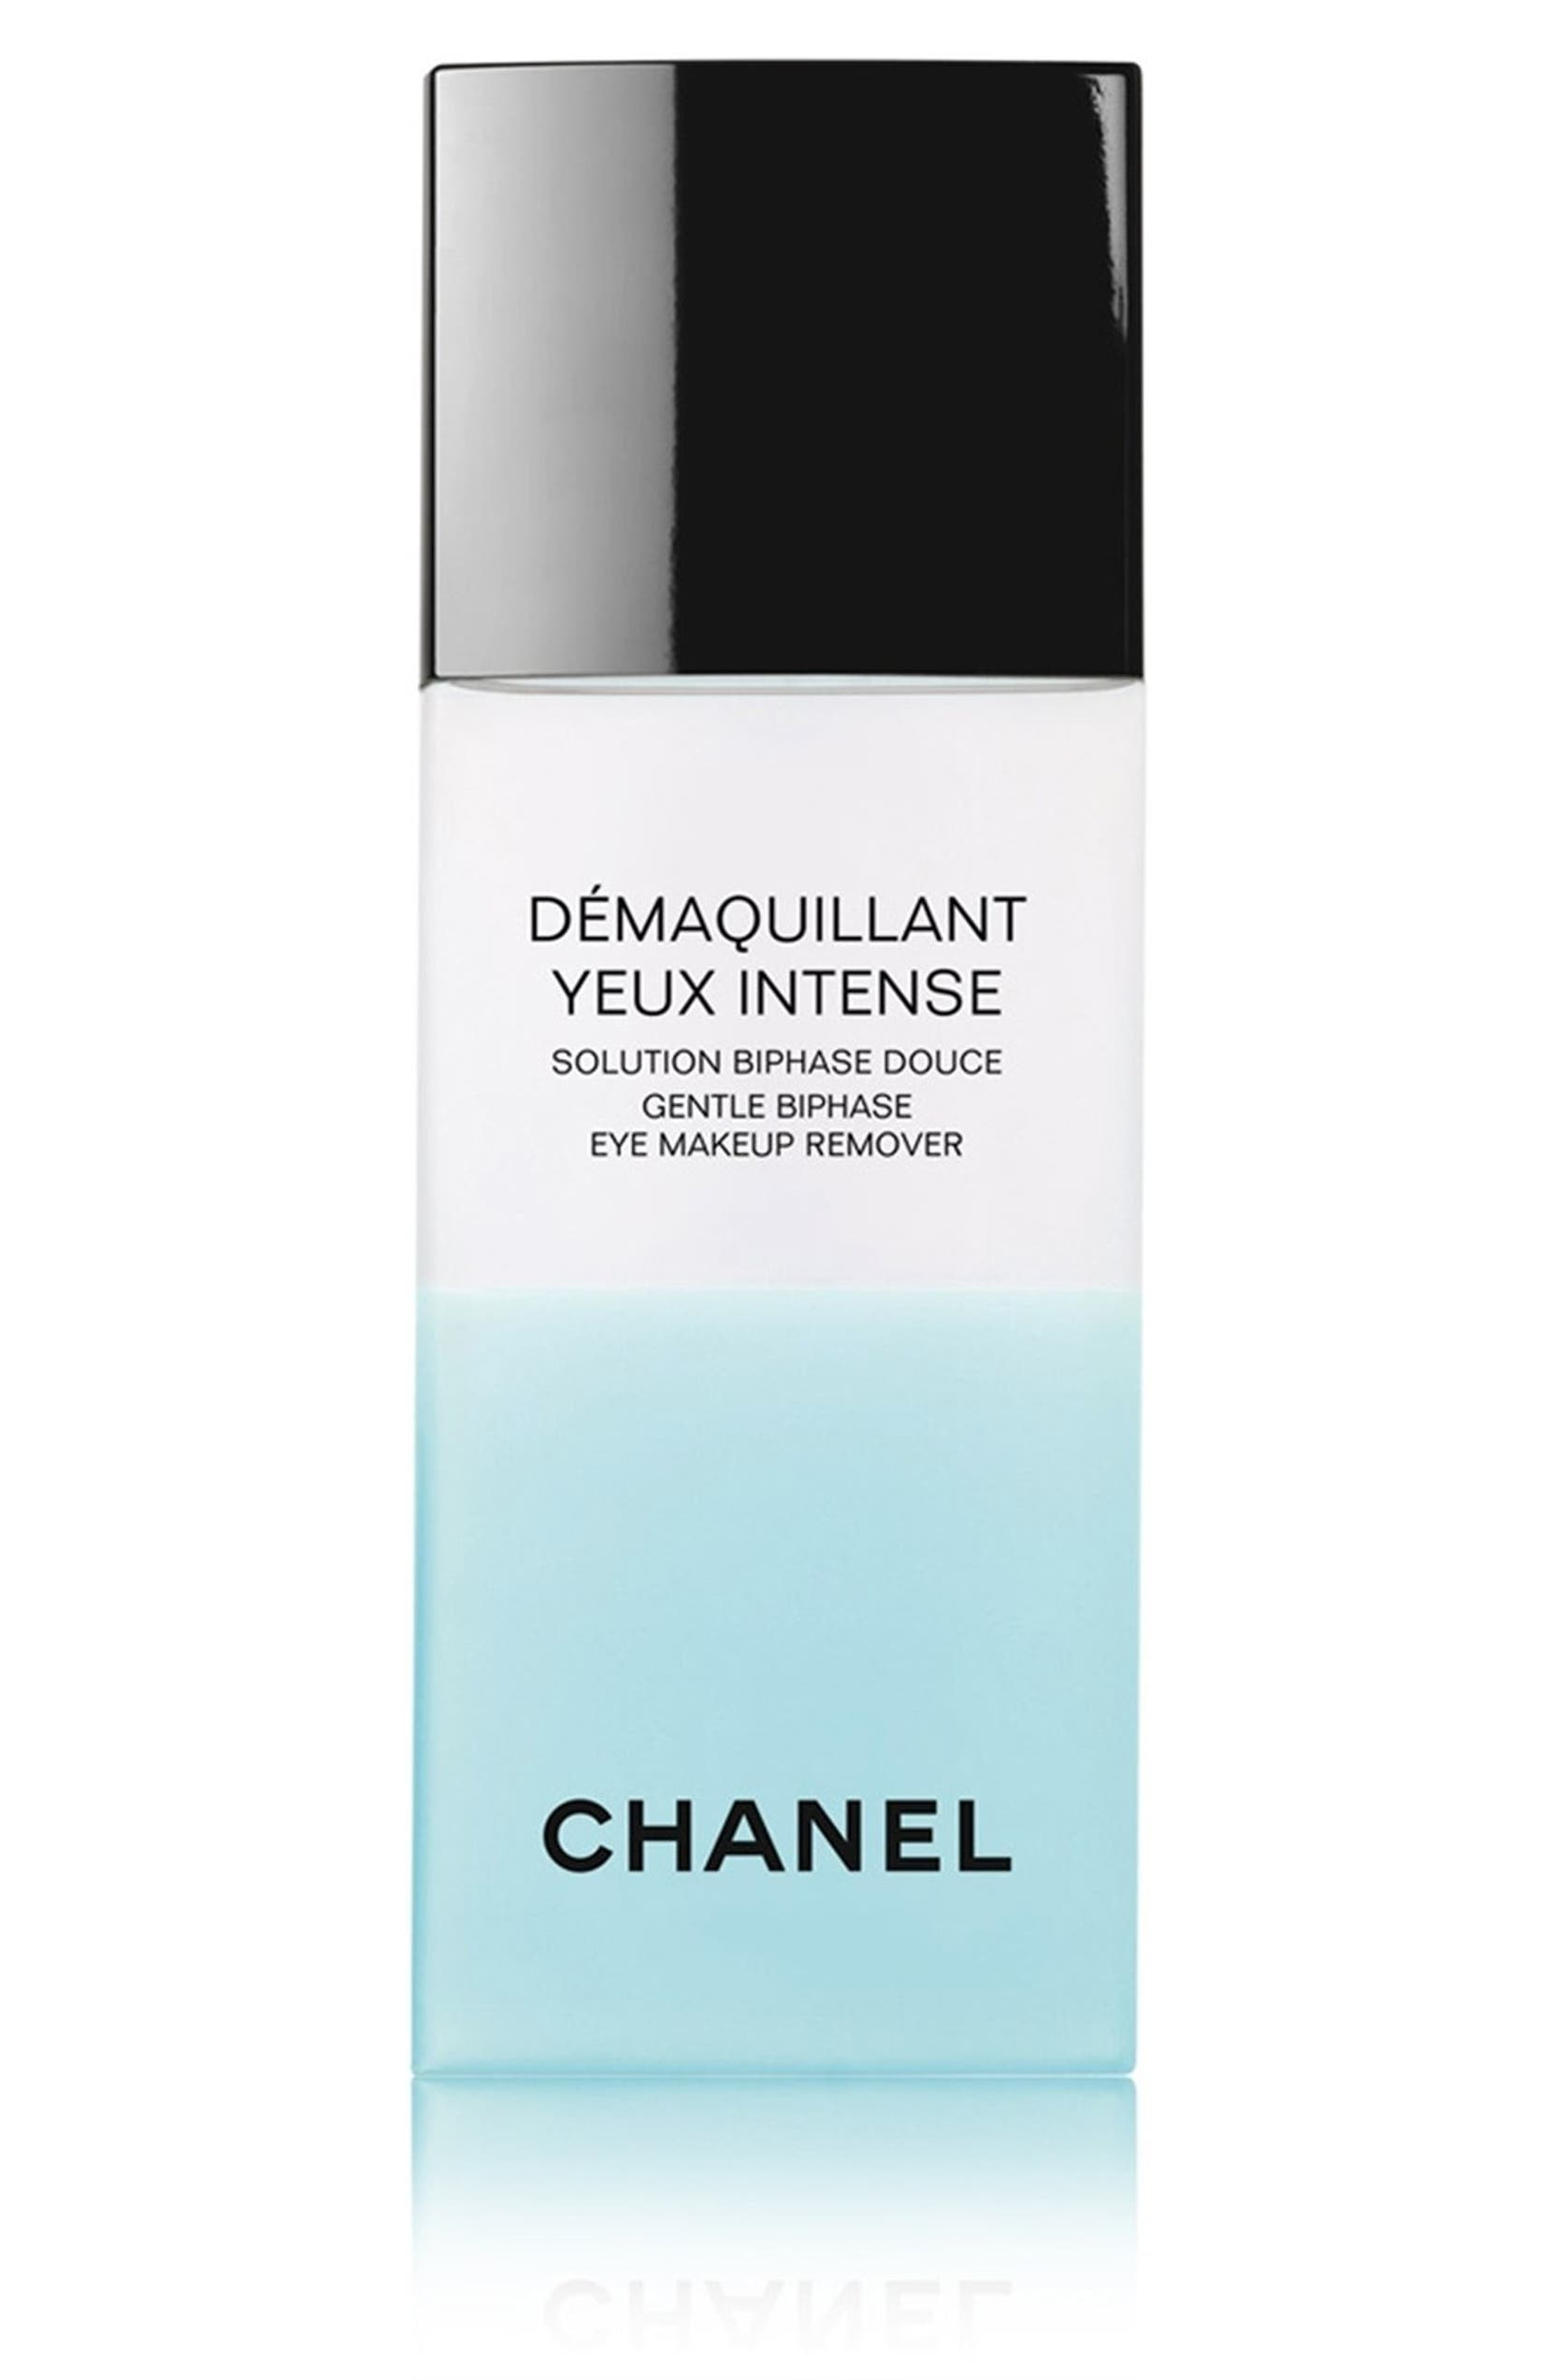 Chanel Dmaquillant Yeux Intense Gentle Bi Phase Eye Makeup Remover